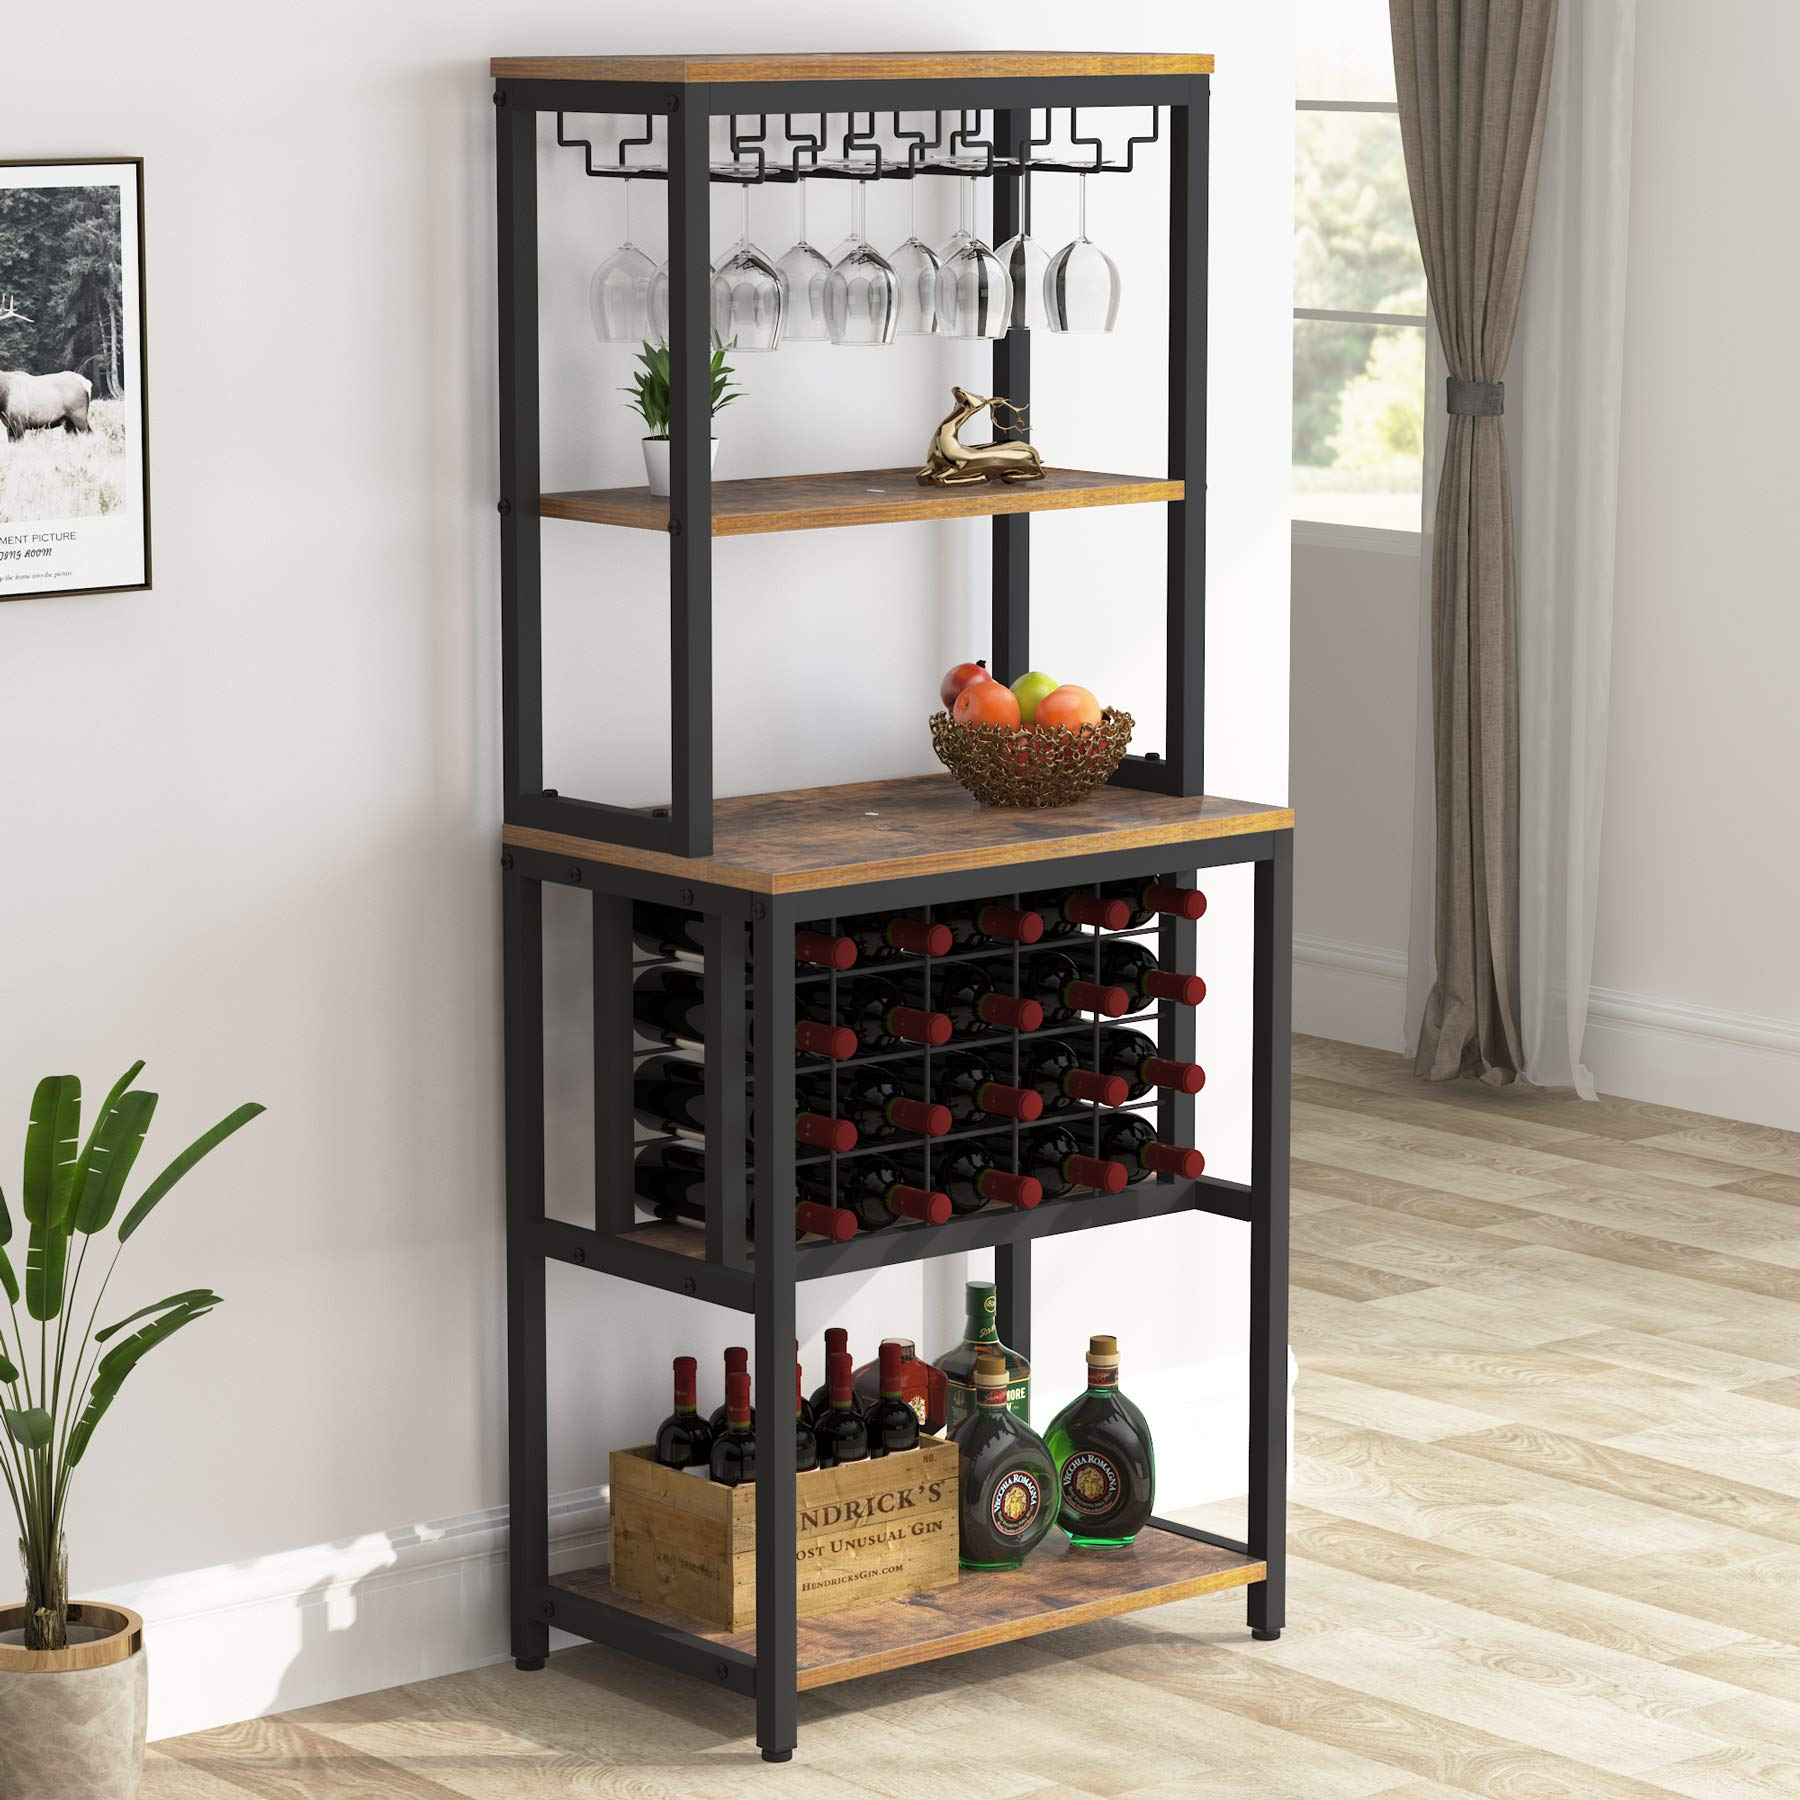 Tribesigns 4-Tier Wine Bakers Rack, Freestanding Wine Rack with Glass Holder and Wine Storage, Multi-Function Home Bar Furniture Wine Bar Cabinet for Kitchen Dining Room